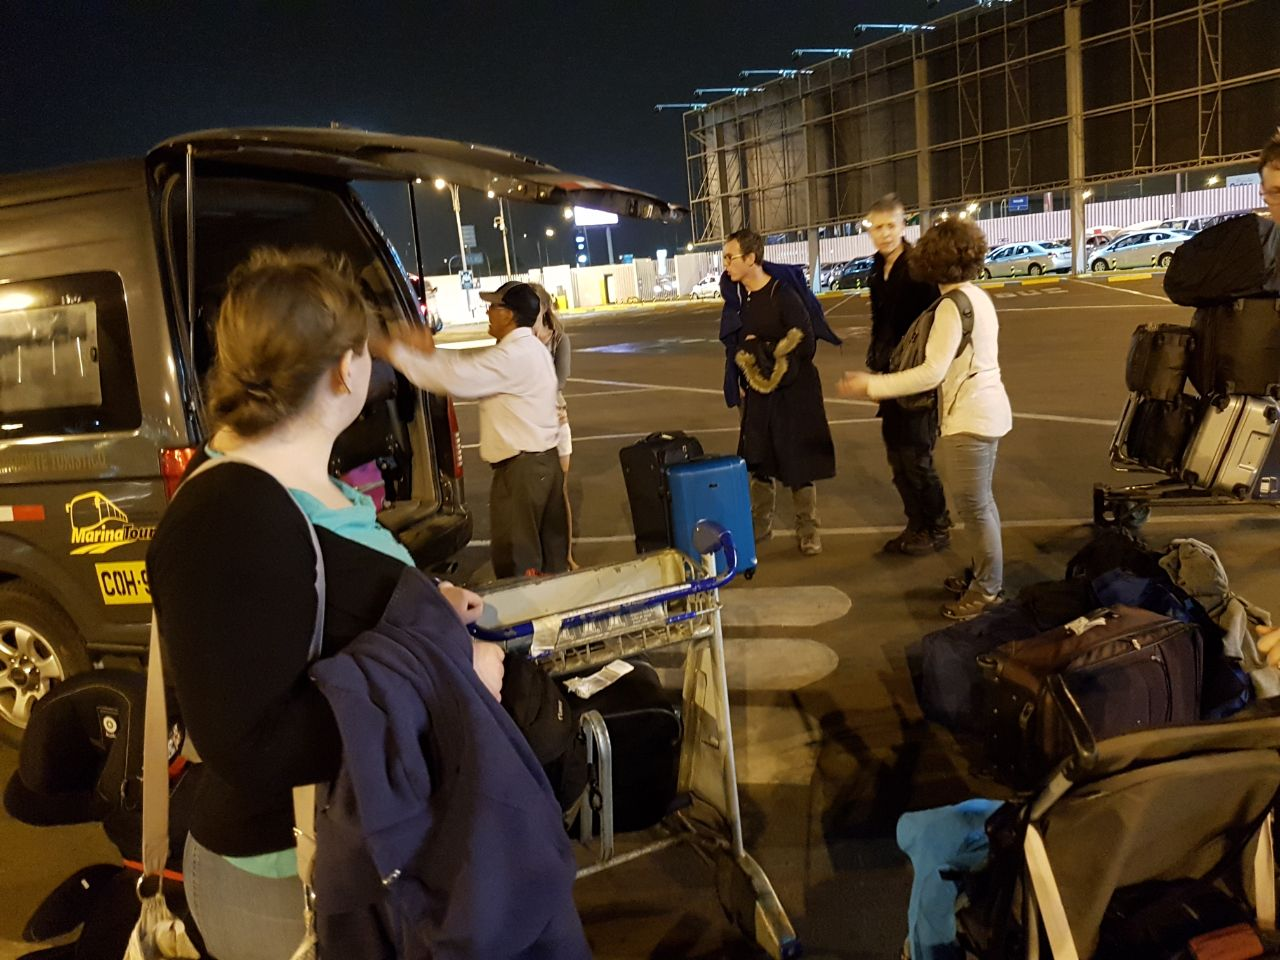 Loading the minibus at the airport in Lima.